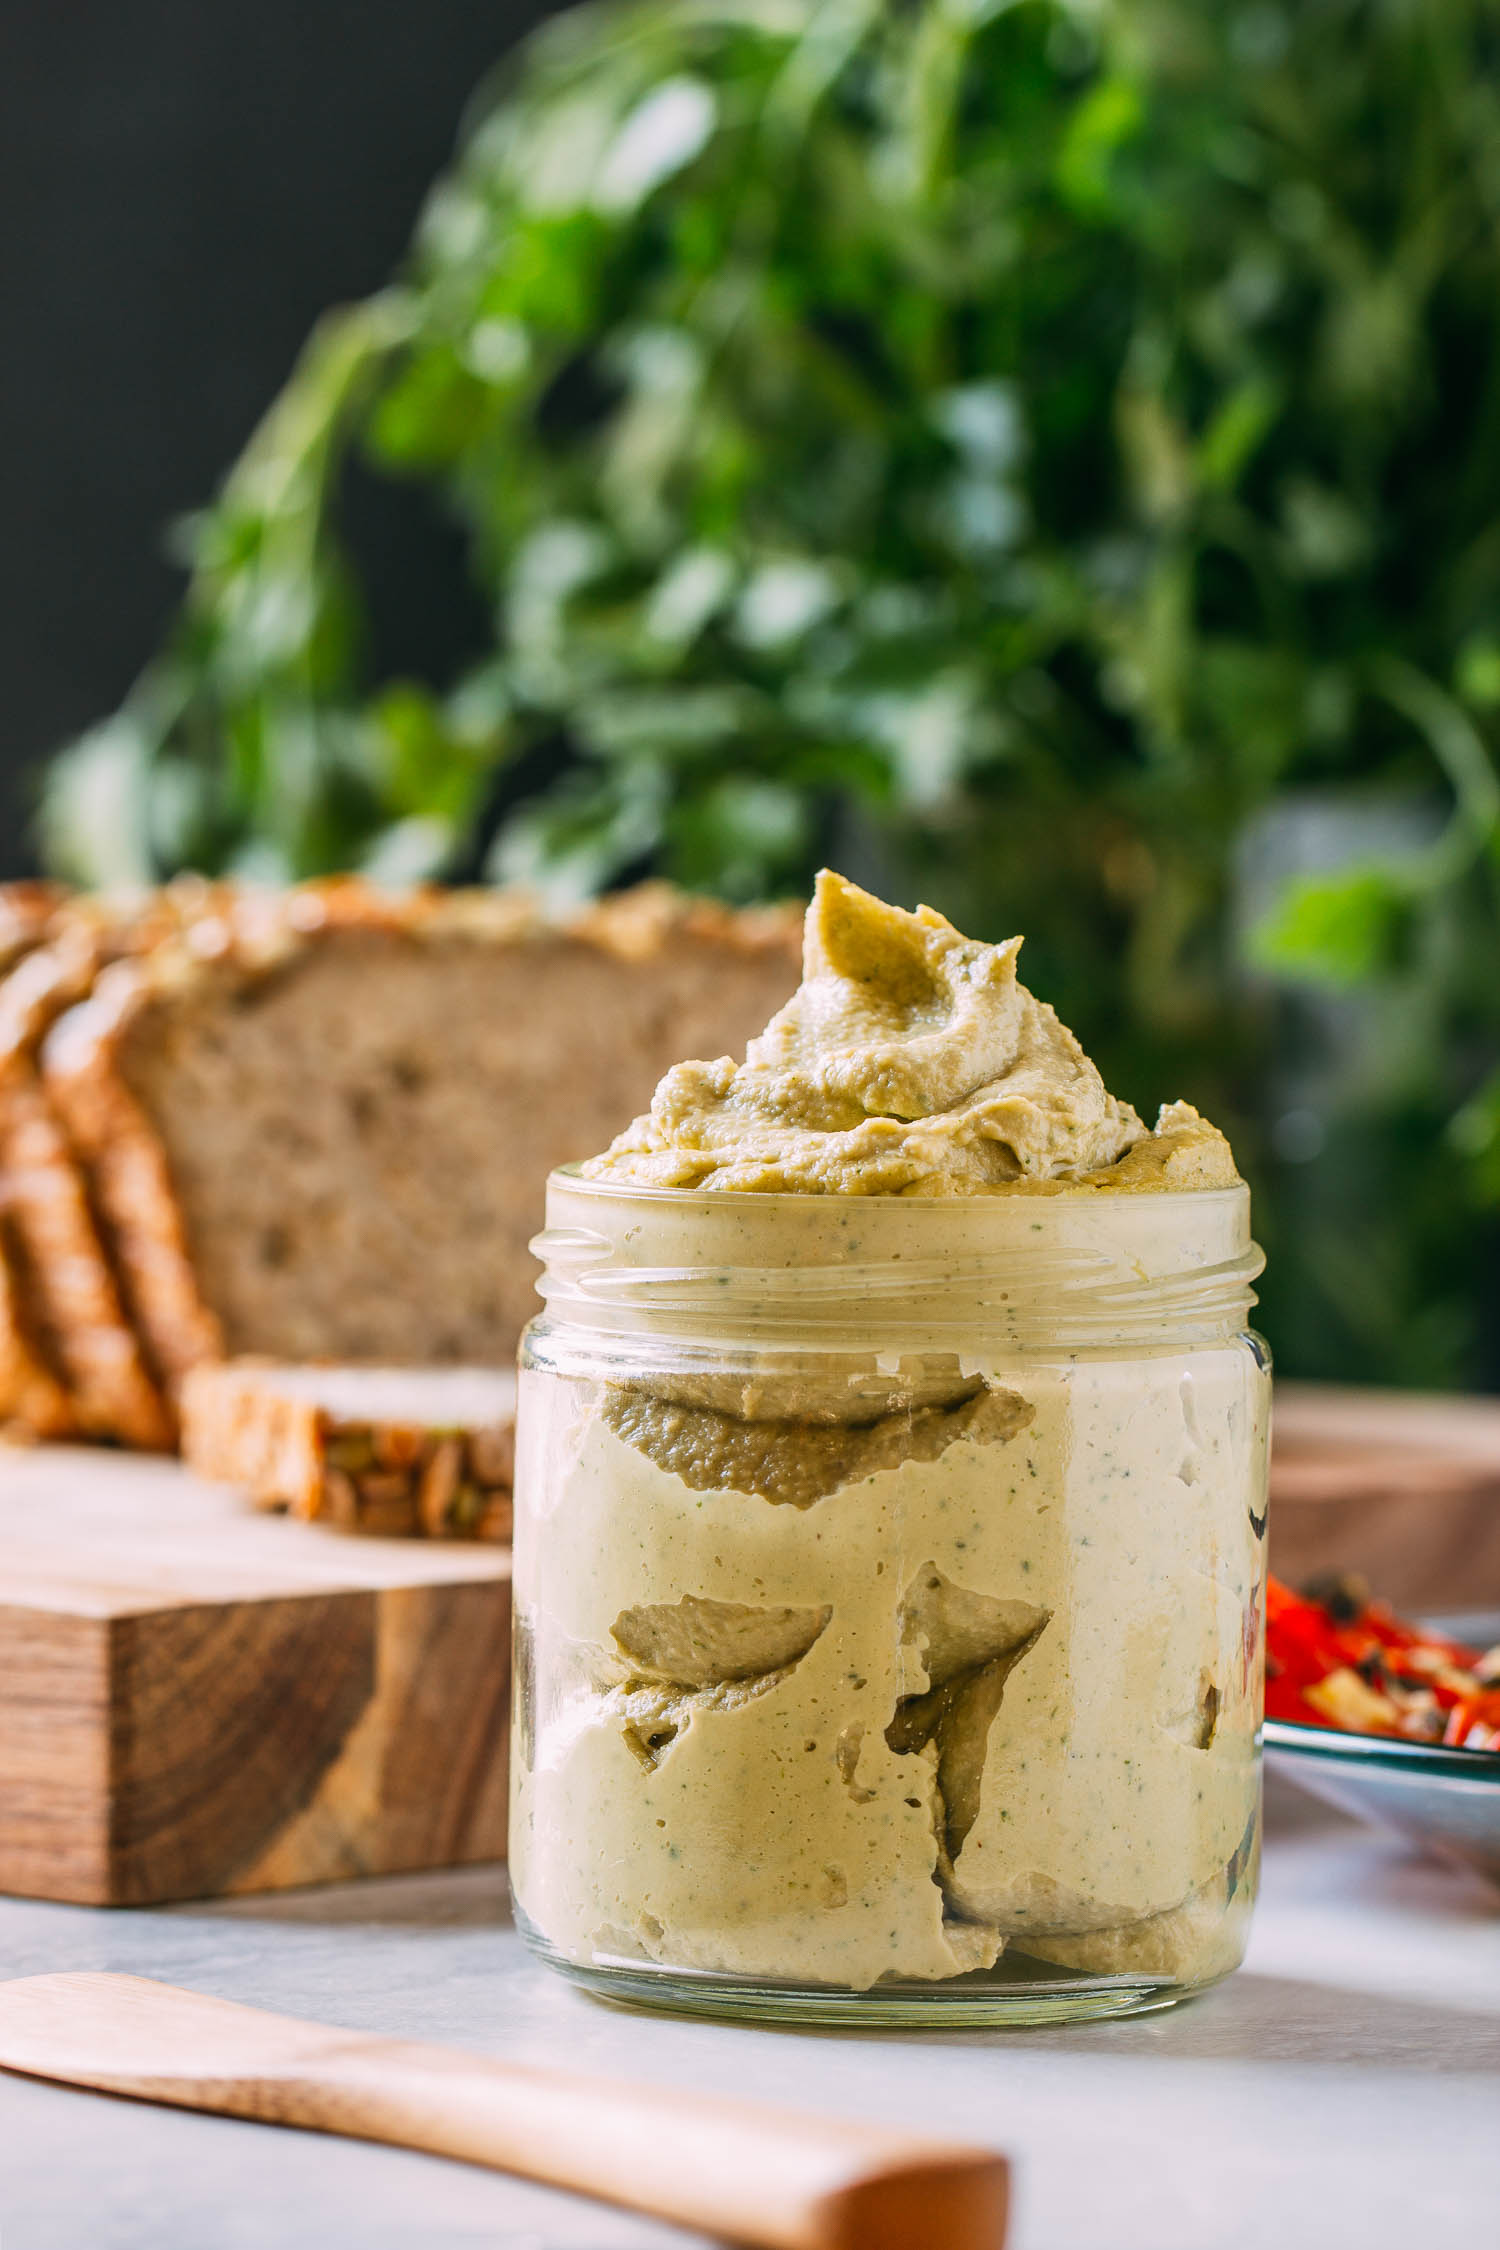 3-Step Sage & Cashew Cream Cheese Spread #cashew #cream #cheese #dairy-free #gluten-free #plant-based #vegan #oil-free #wfpb #wfpbno #recipe #easy #recipes #no-cook #raw #cashews #tahini #sage #parsley, #garlic #lemon #appetizer #entertaining #budget #party #tailgating #spread #cheesy #snack #kid-friendly